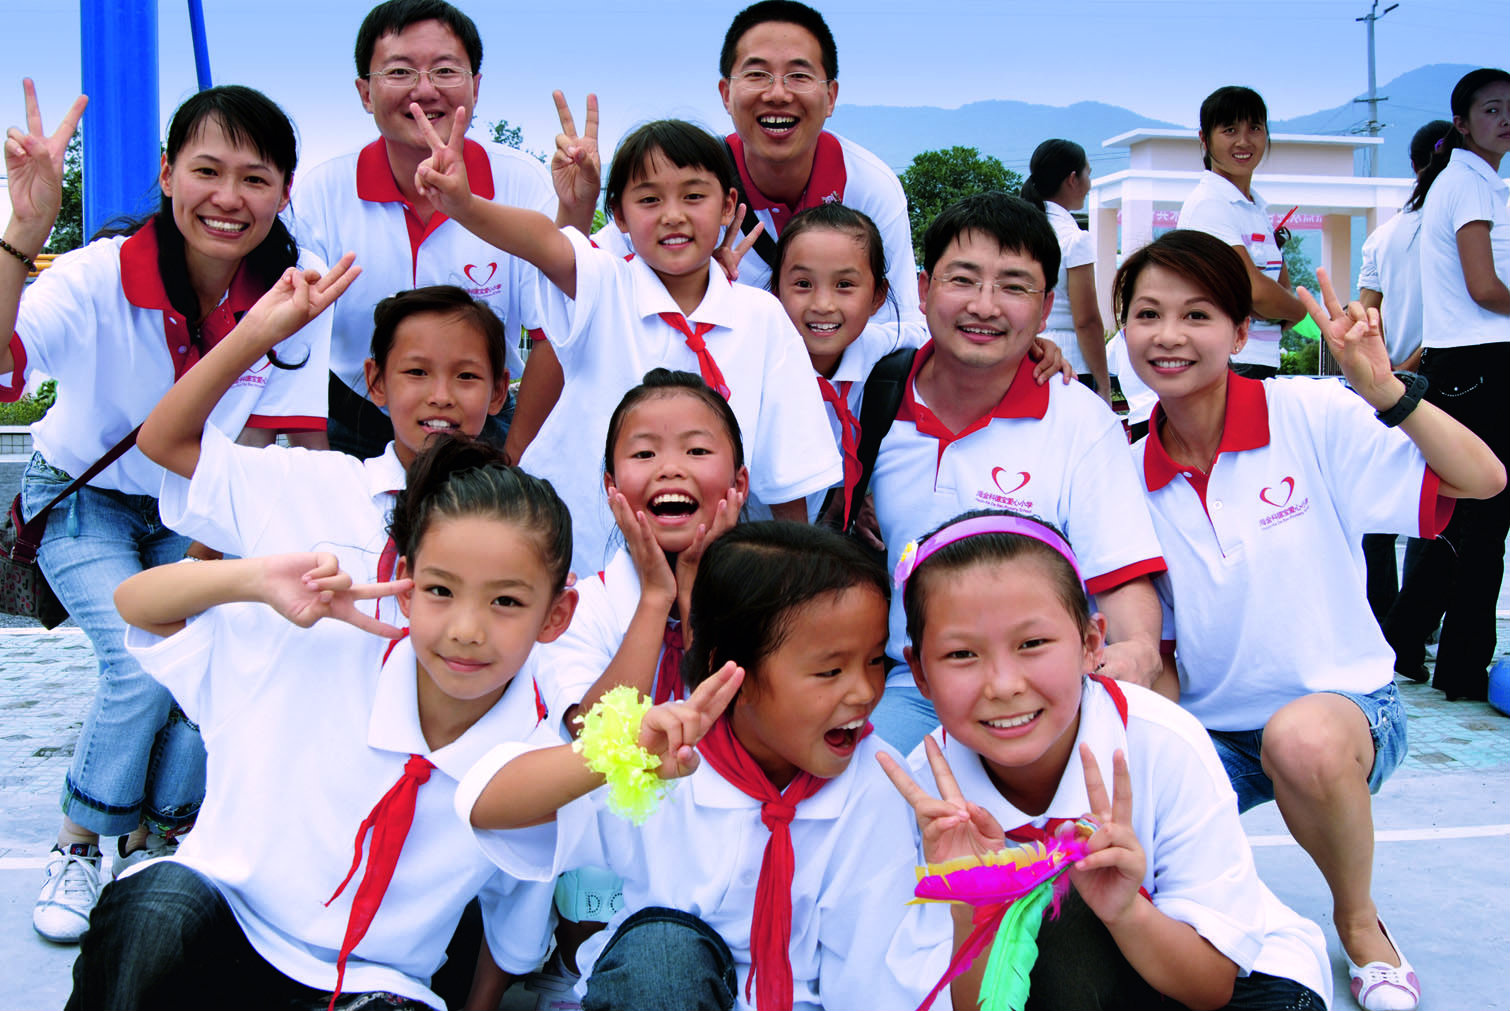 Photo of Freudenberg volunteers who helped to rebuilt the elementary school in Haijin, a village in Sichuan province, which had been completely destroyed by the devastating earthquake in May 2008.